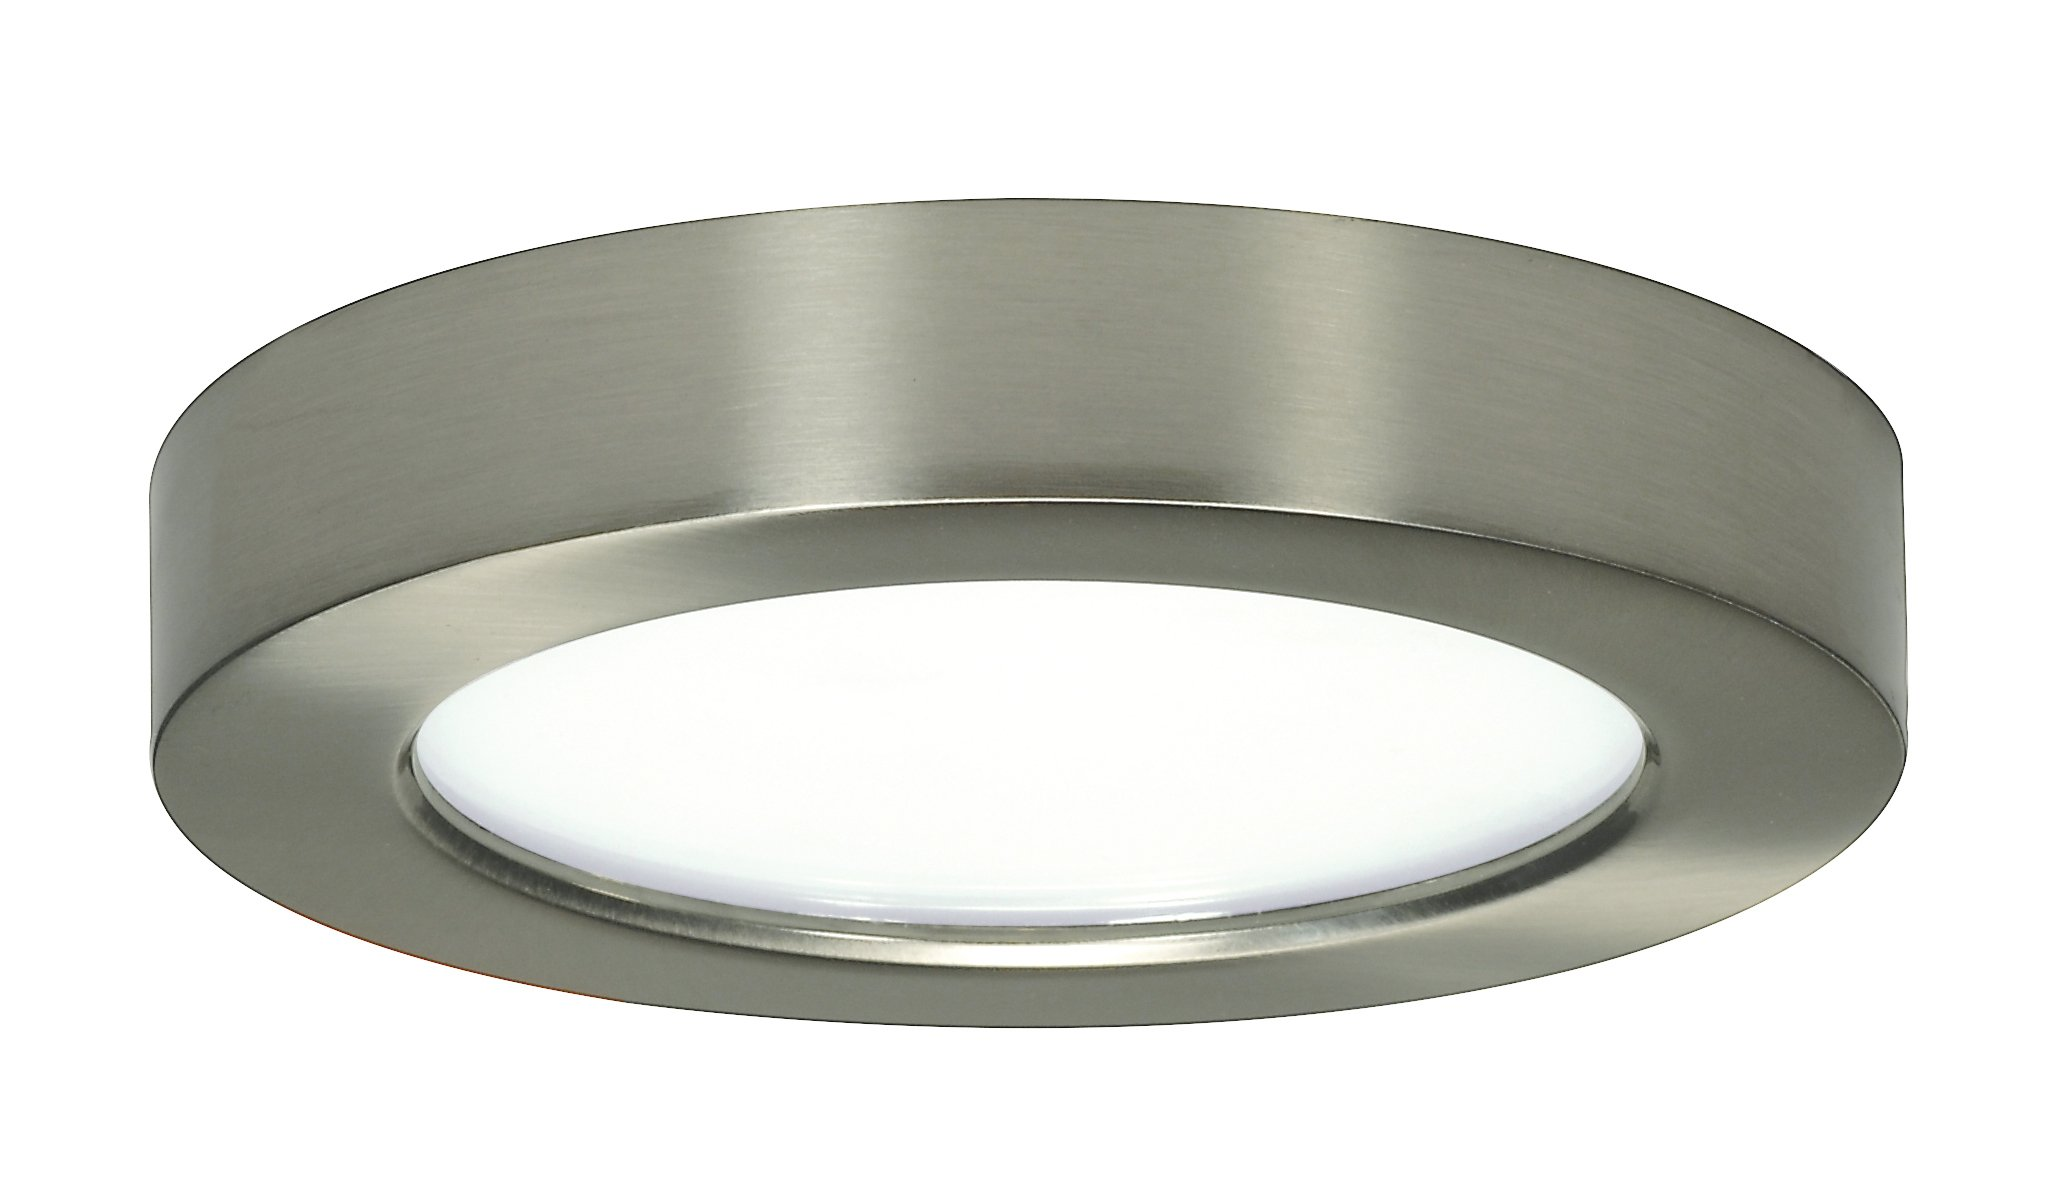 Satco Products S9321 Blink Flush Mount LED